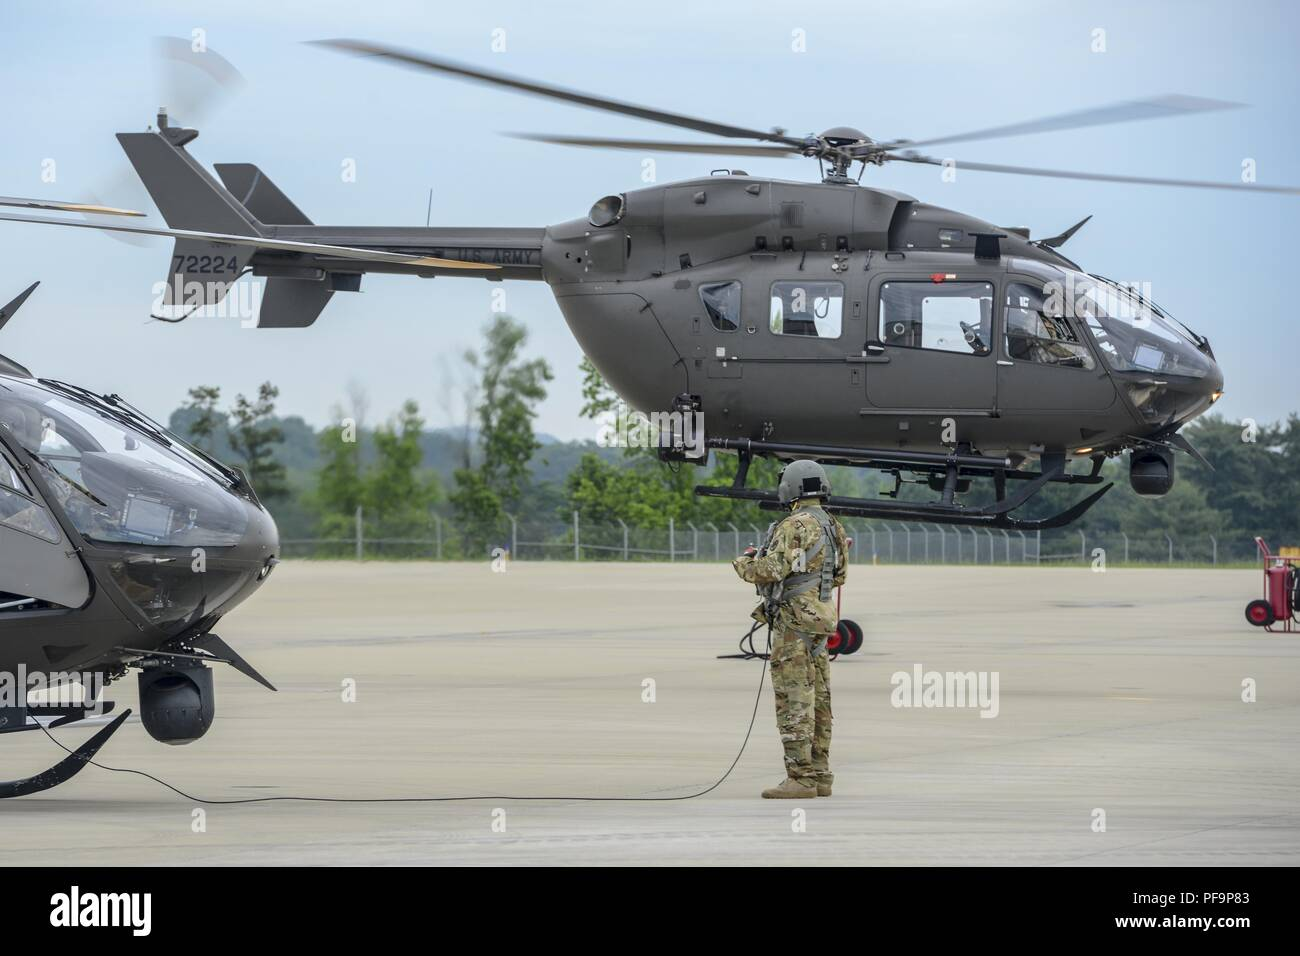 US Soldiers assigned to the 2-151st Security and Support Aviation Battalion, South Carolina Army National Guard depart the SC Technology and Aviation Center, Greenville, SC in a UH-72A Lakota helicopter to provide support to the US Border Patrol in Texas, May 21, 2018. Image courtesy Sgt. Jorge Intriago/South Carolina National Guard. () Stock Photo